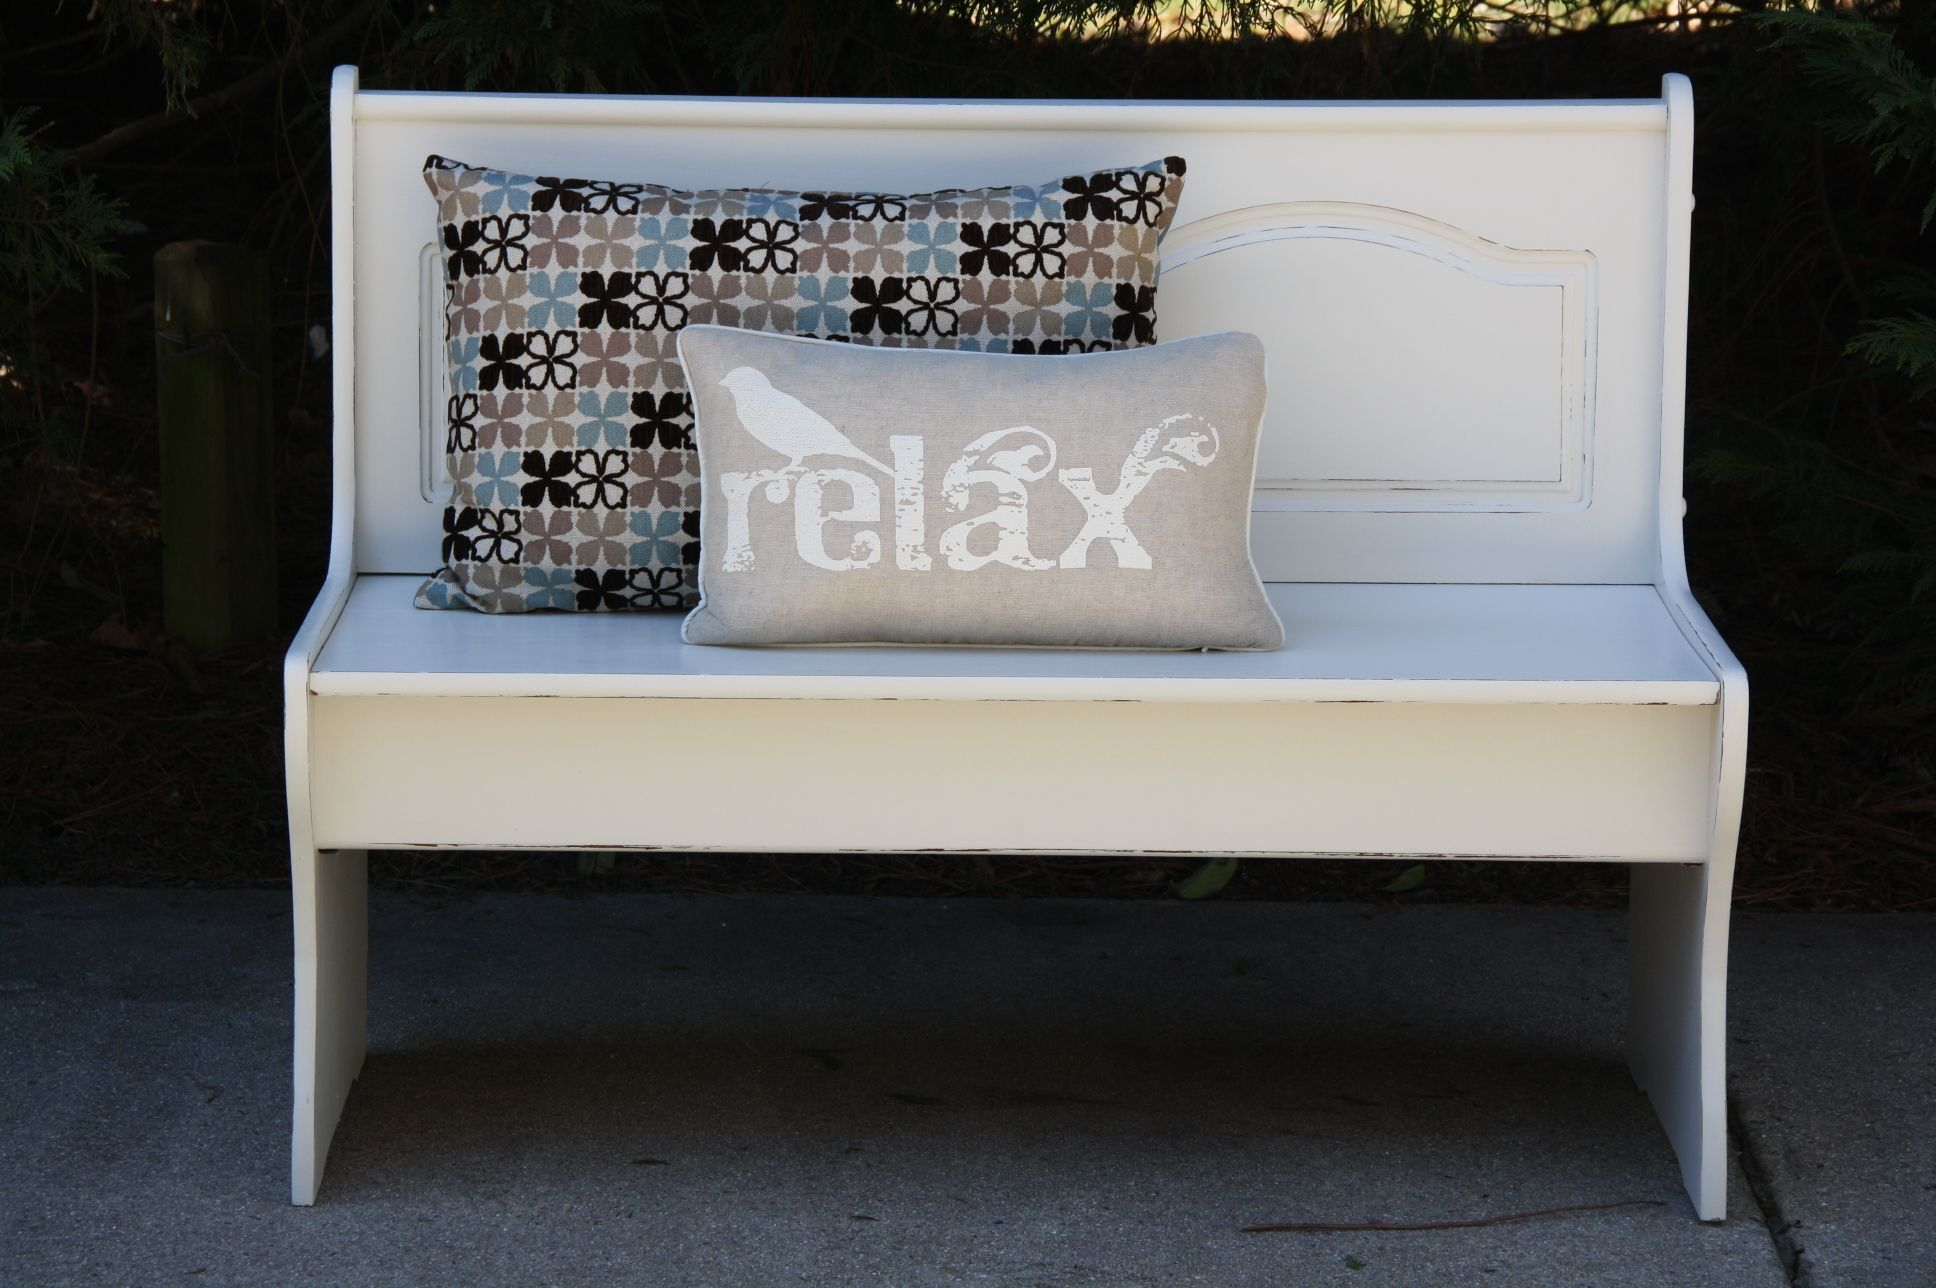 Tremendous Small Church Pew Bench Diy Crafts Home Decor Church Pew Caraccident5 Cool Chair Designs And Ideas Caraccident5Info